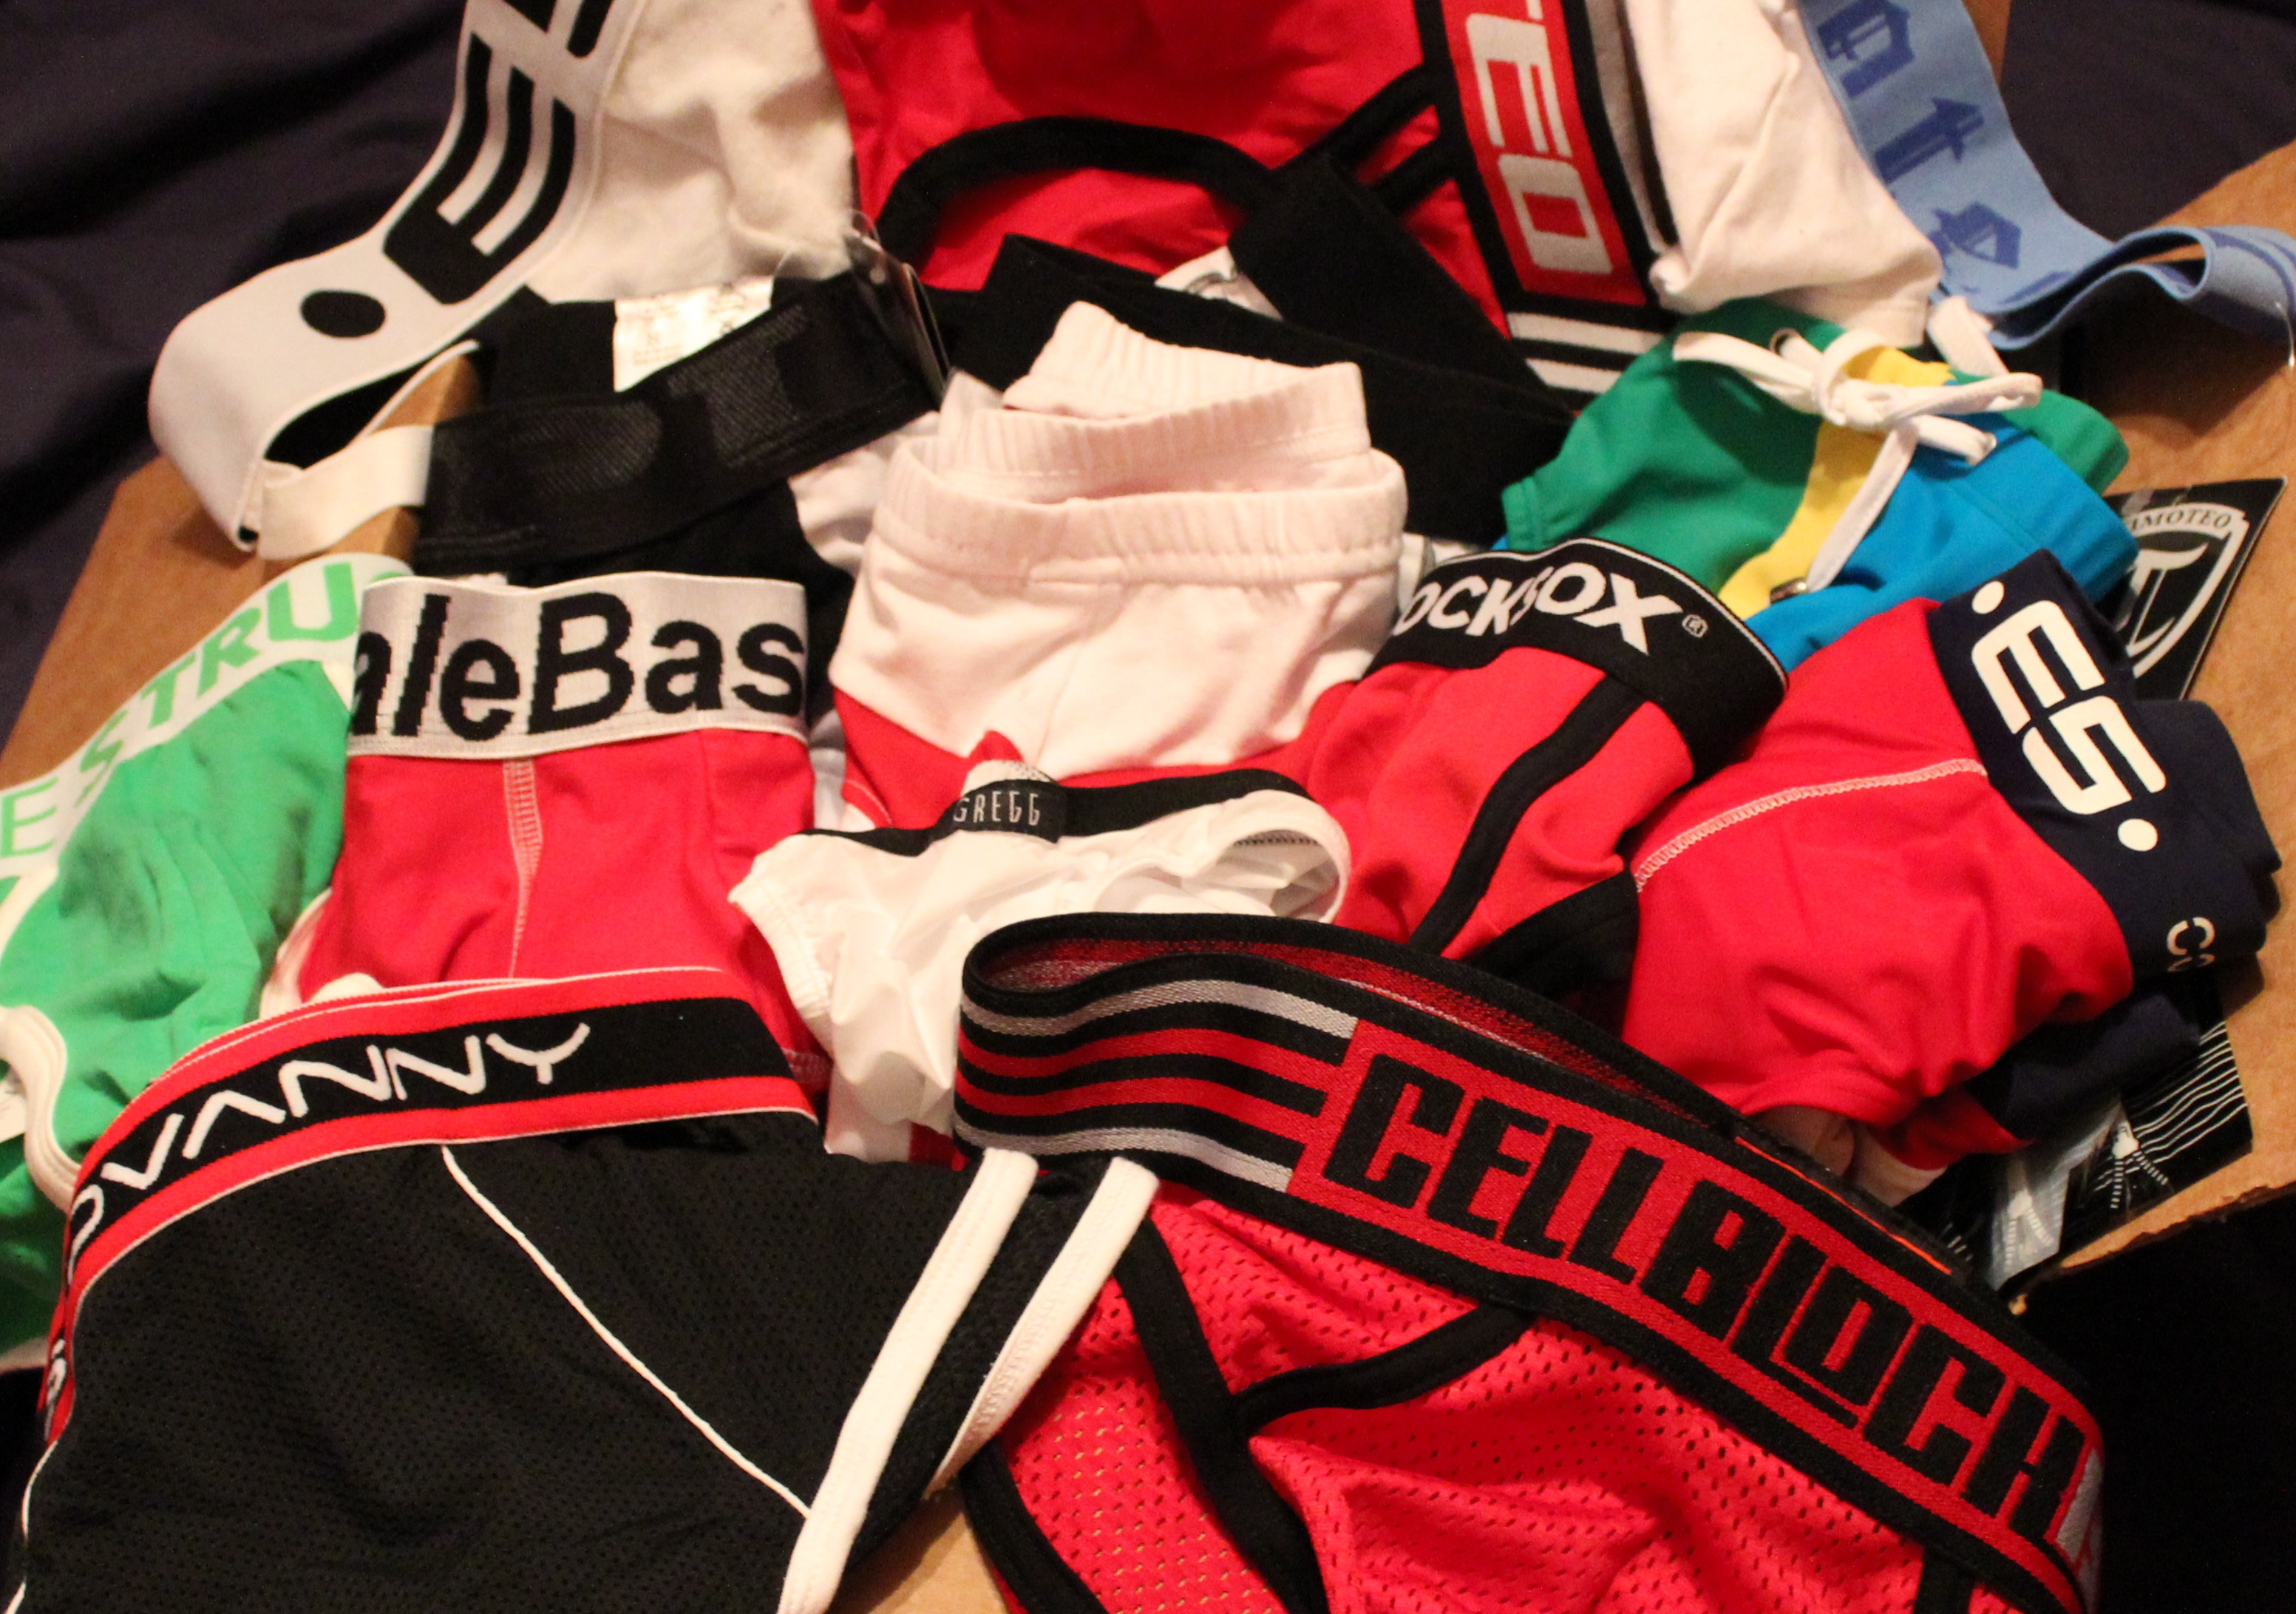 Cleaned out the Underwear Drawer? Now What do you do with the old pairs?